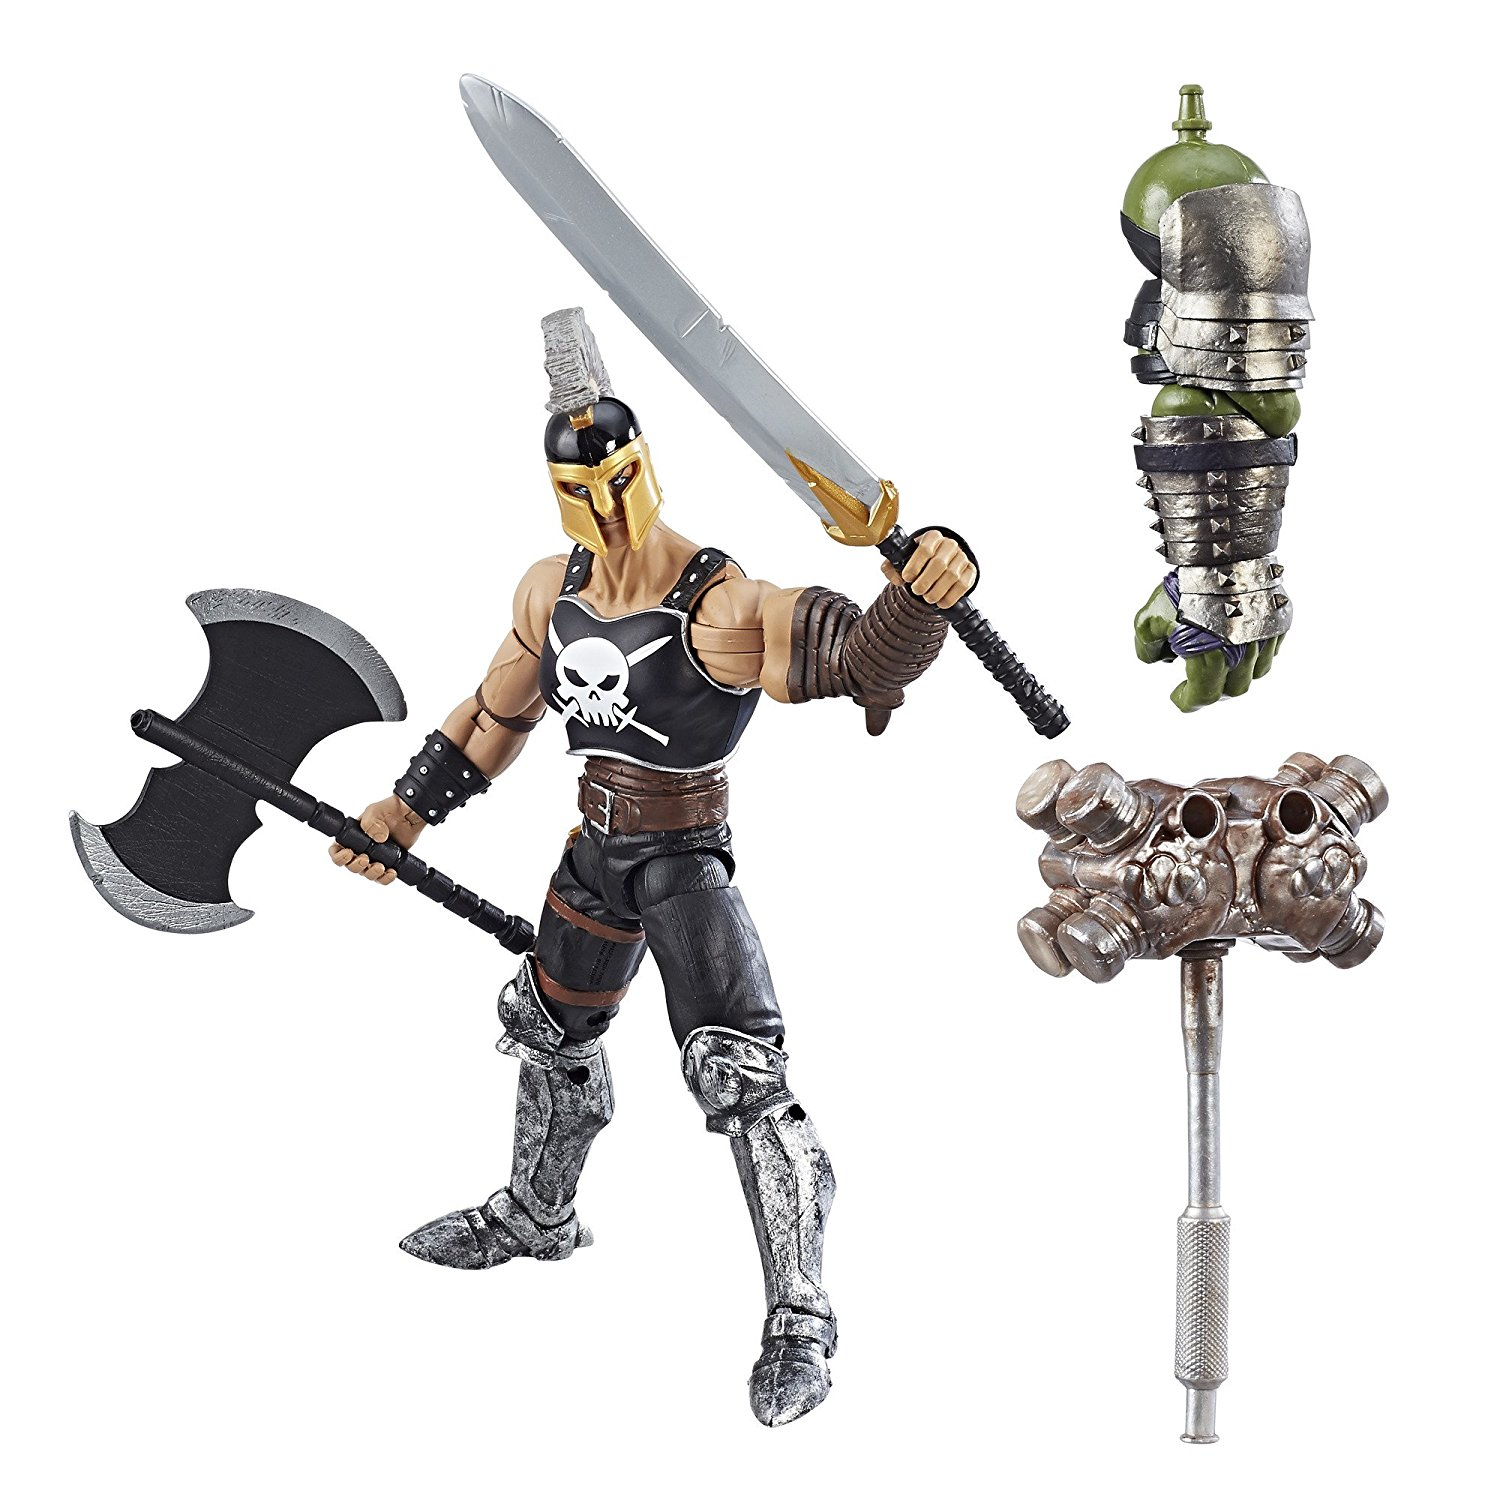 Marvel Thor Legends Series 6-inch Nine Realms Warriors (Marvel's Ares), Comic-inspired design By Avengers by